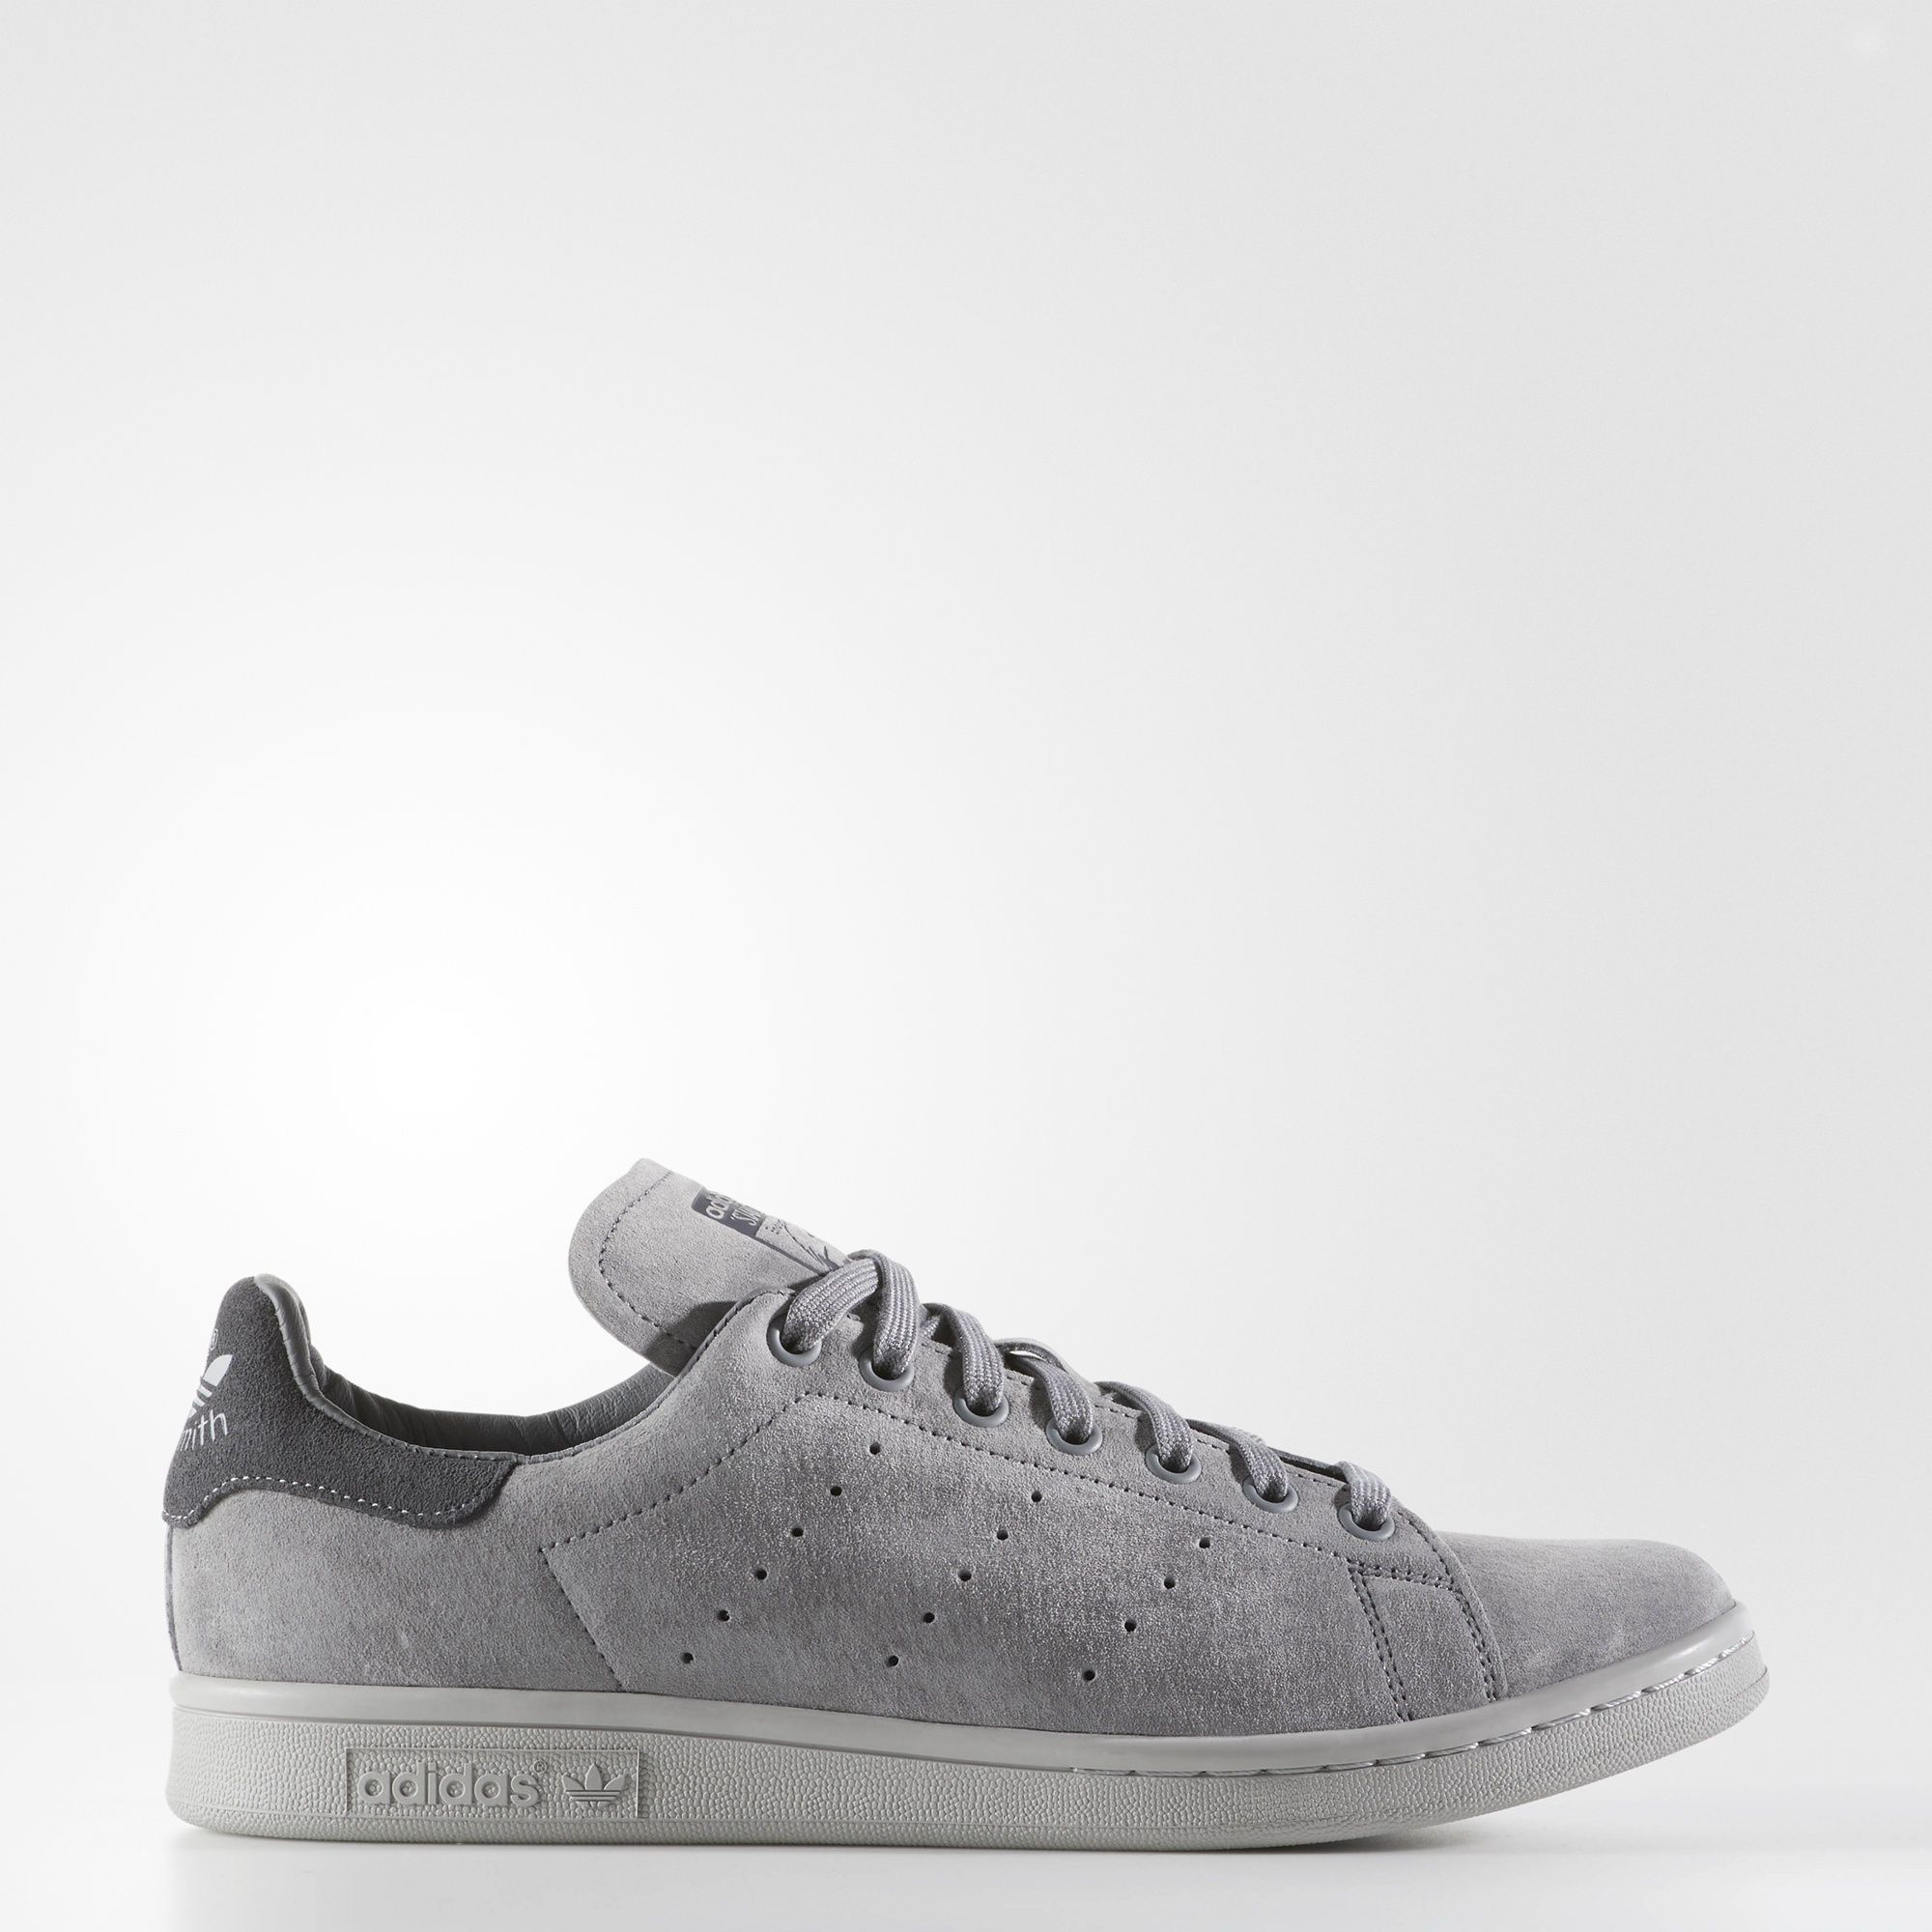 adidas Stan Smith Vulc Schuh - gold | adidas Deutschland | erryday shoe |  Pinterest | Stan smith, Adidas stan smith and Adidas stan